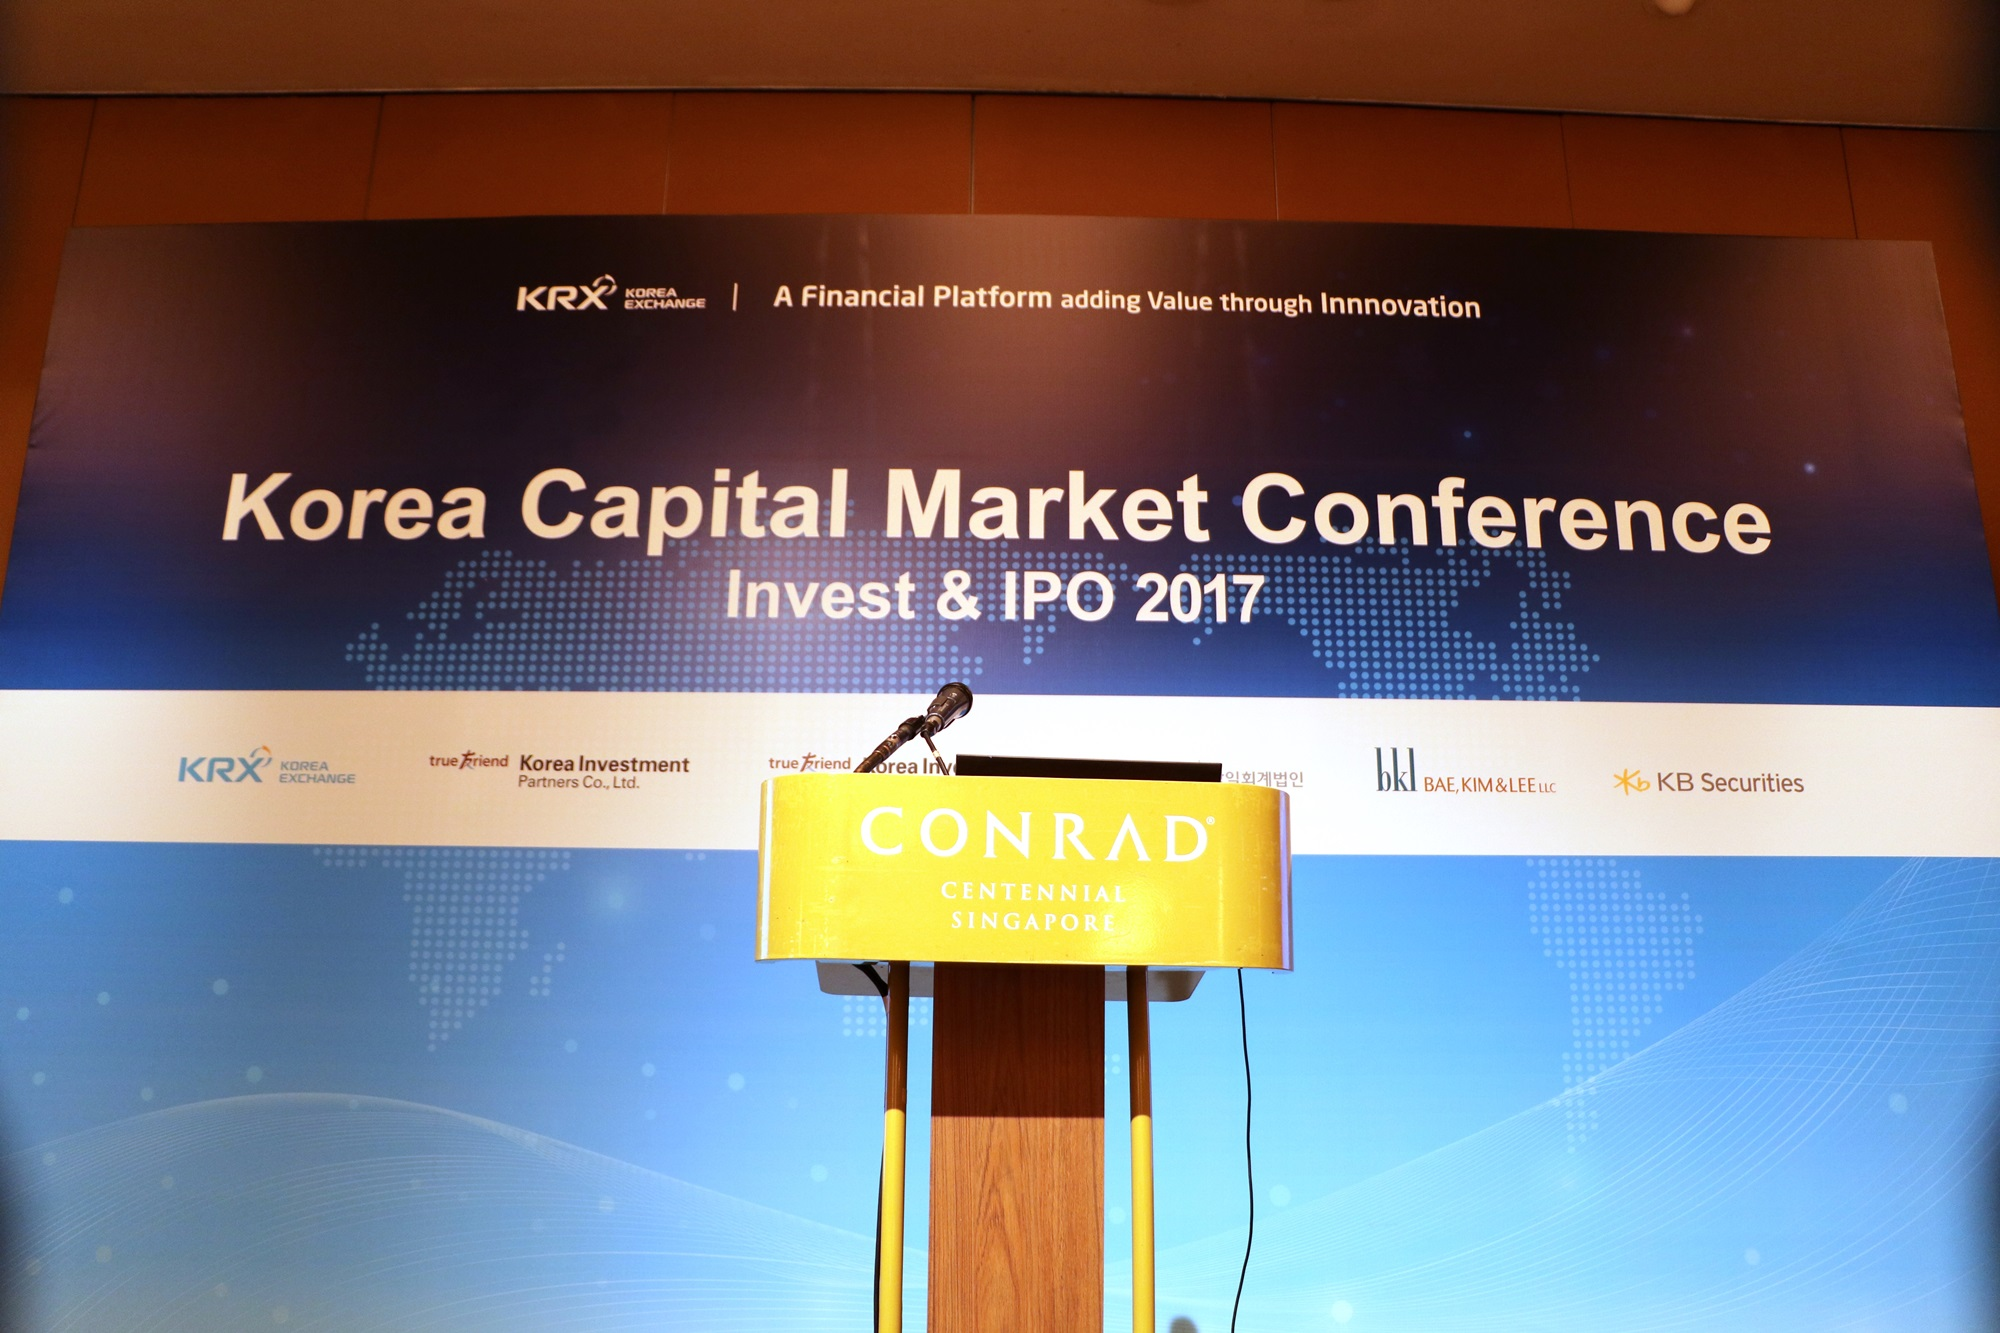 Korea Capital Market Conference - Highlights 1